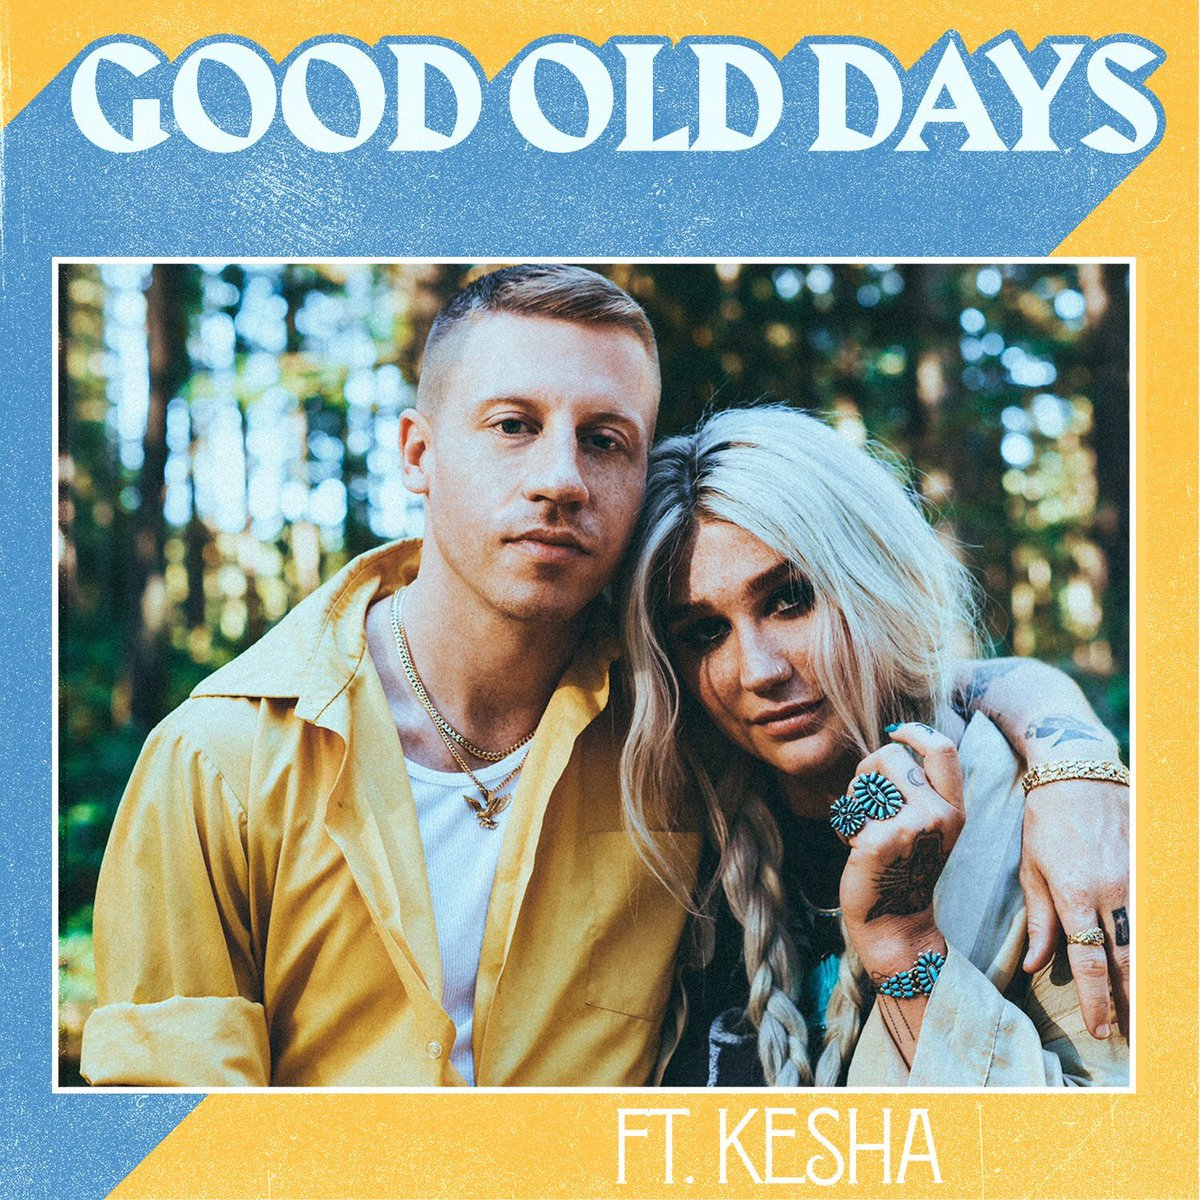 &#39;Good Old Days&#39; by Macklemore featuring Kesha will be released today at 9AM PST / 12PM EST! #GoodOldDays <br>http://pic.twitter.com/IEIPHk3Bjt